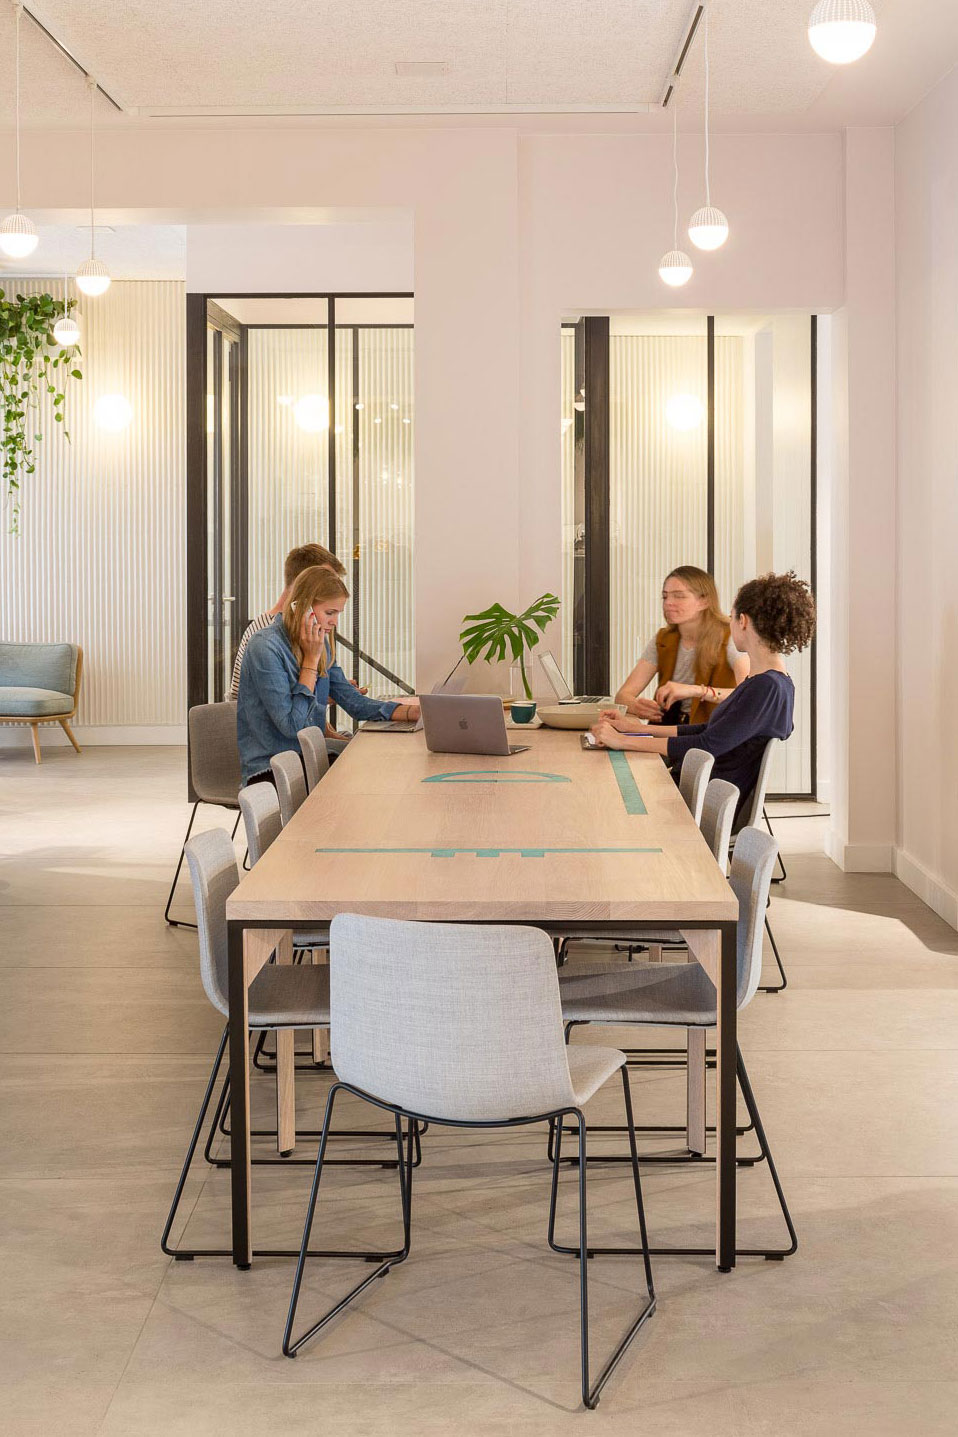 Architecture-London-Design-Freehaus-Puzzle-Table-10.jpg